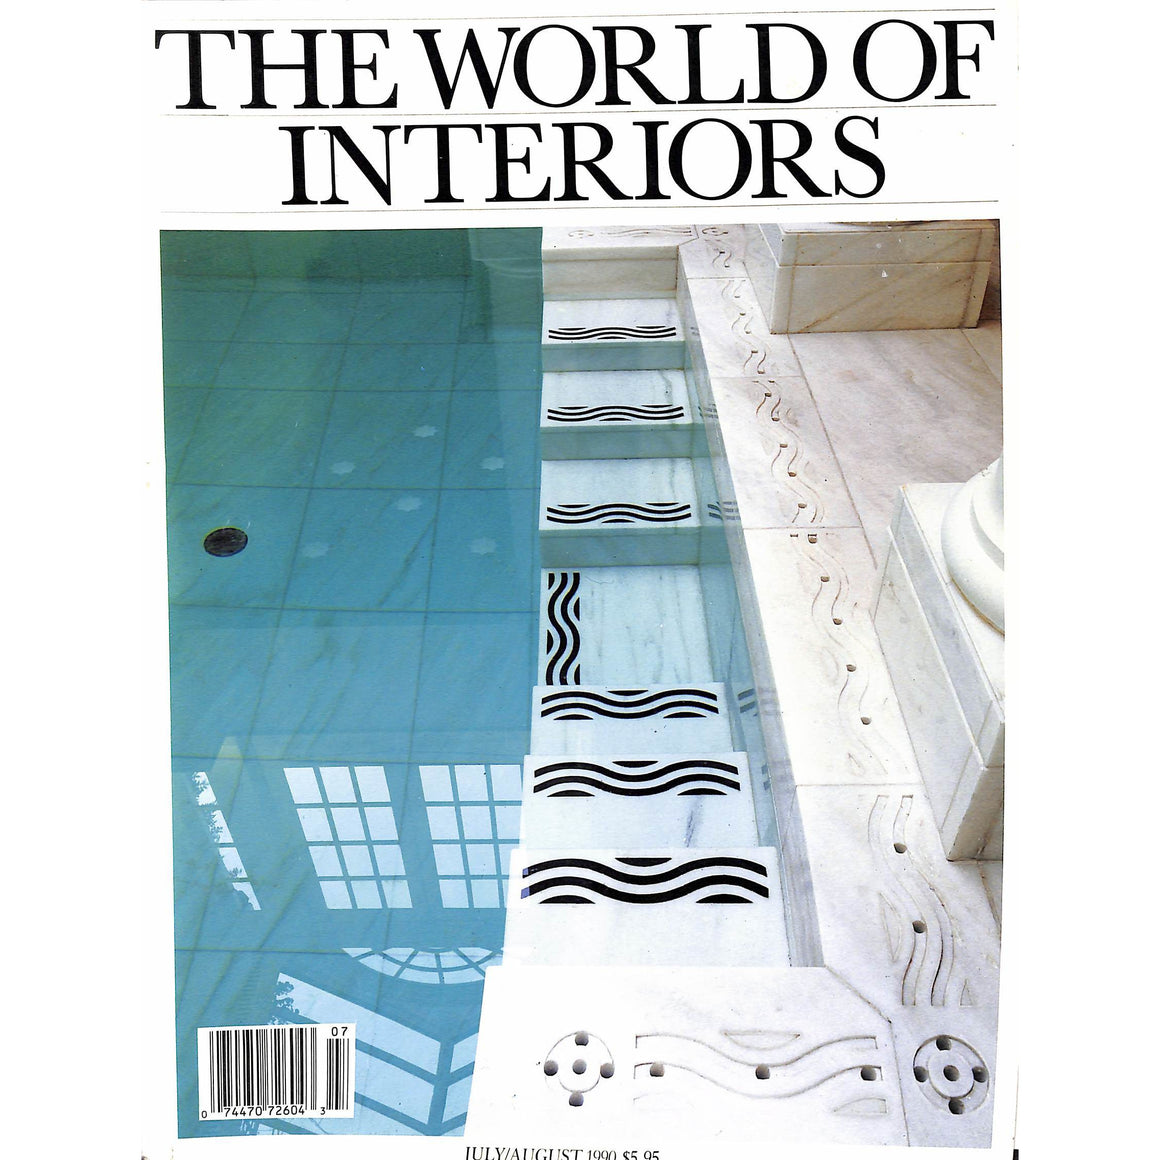 The World of Interiors July/August 1990